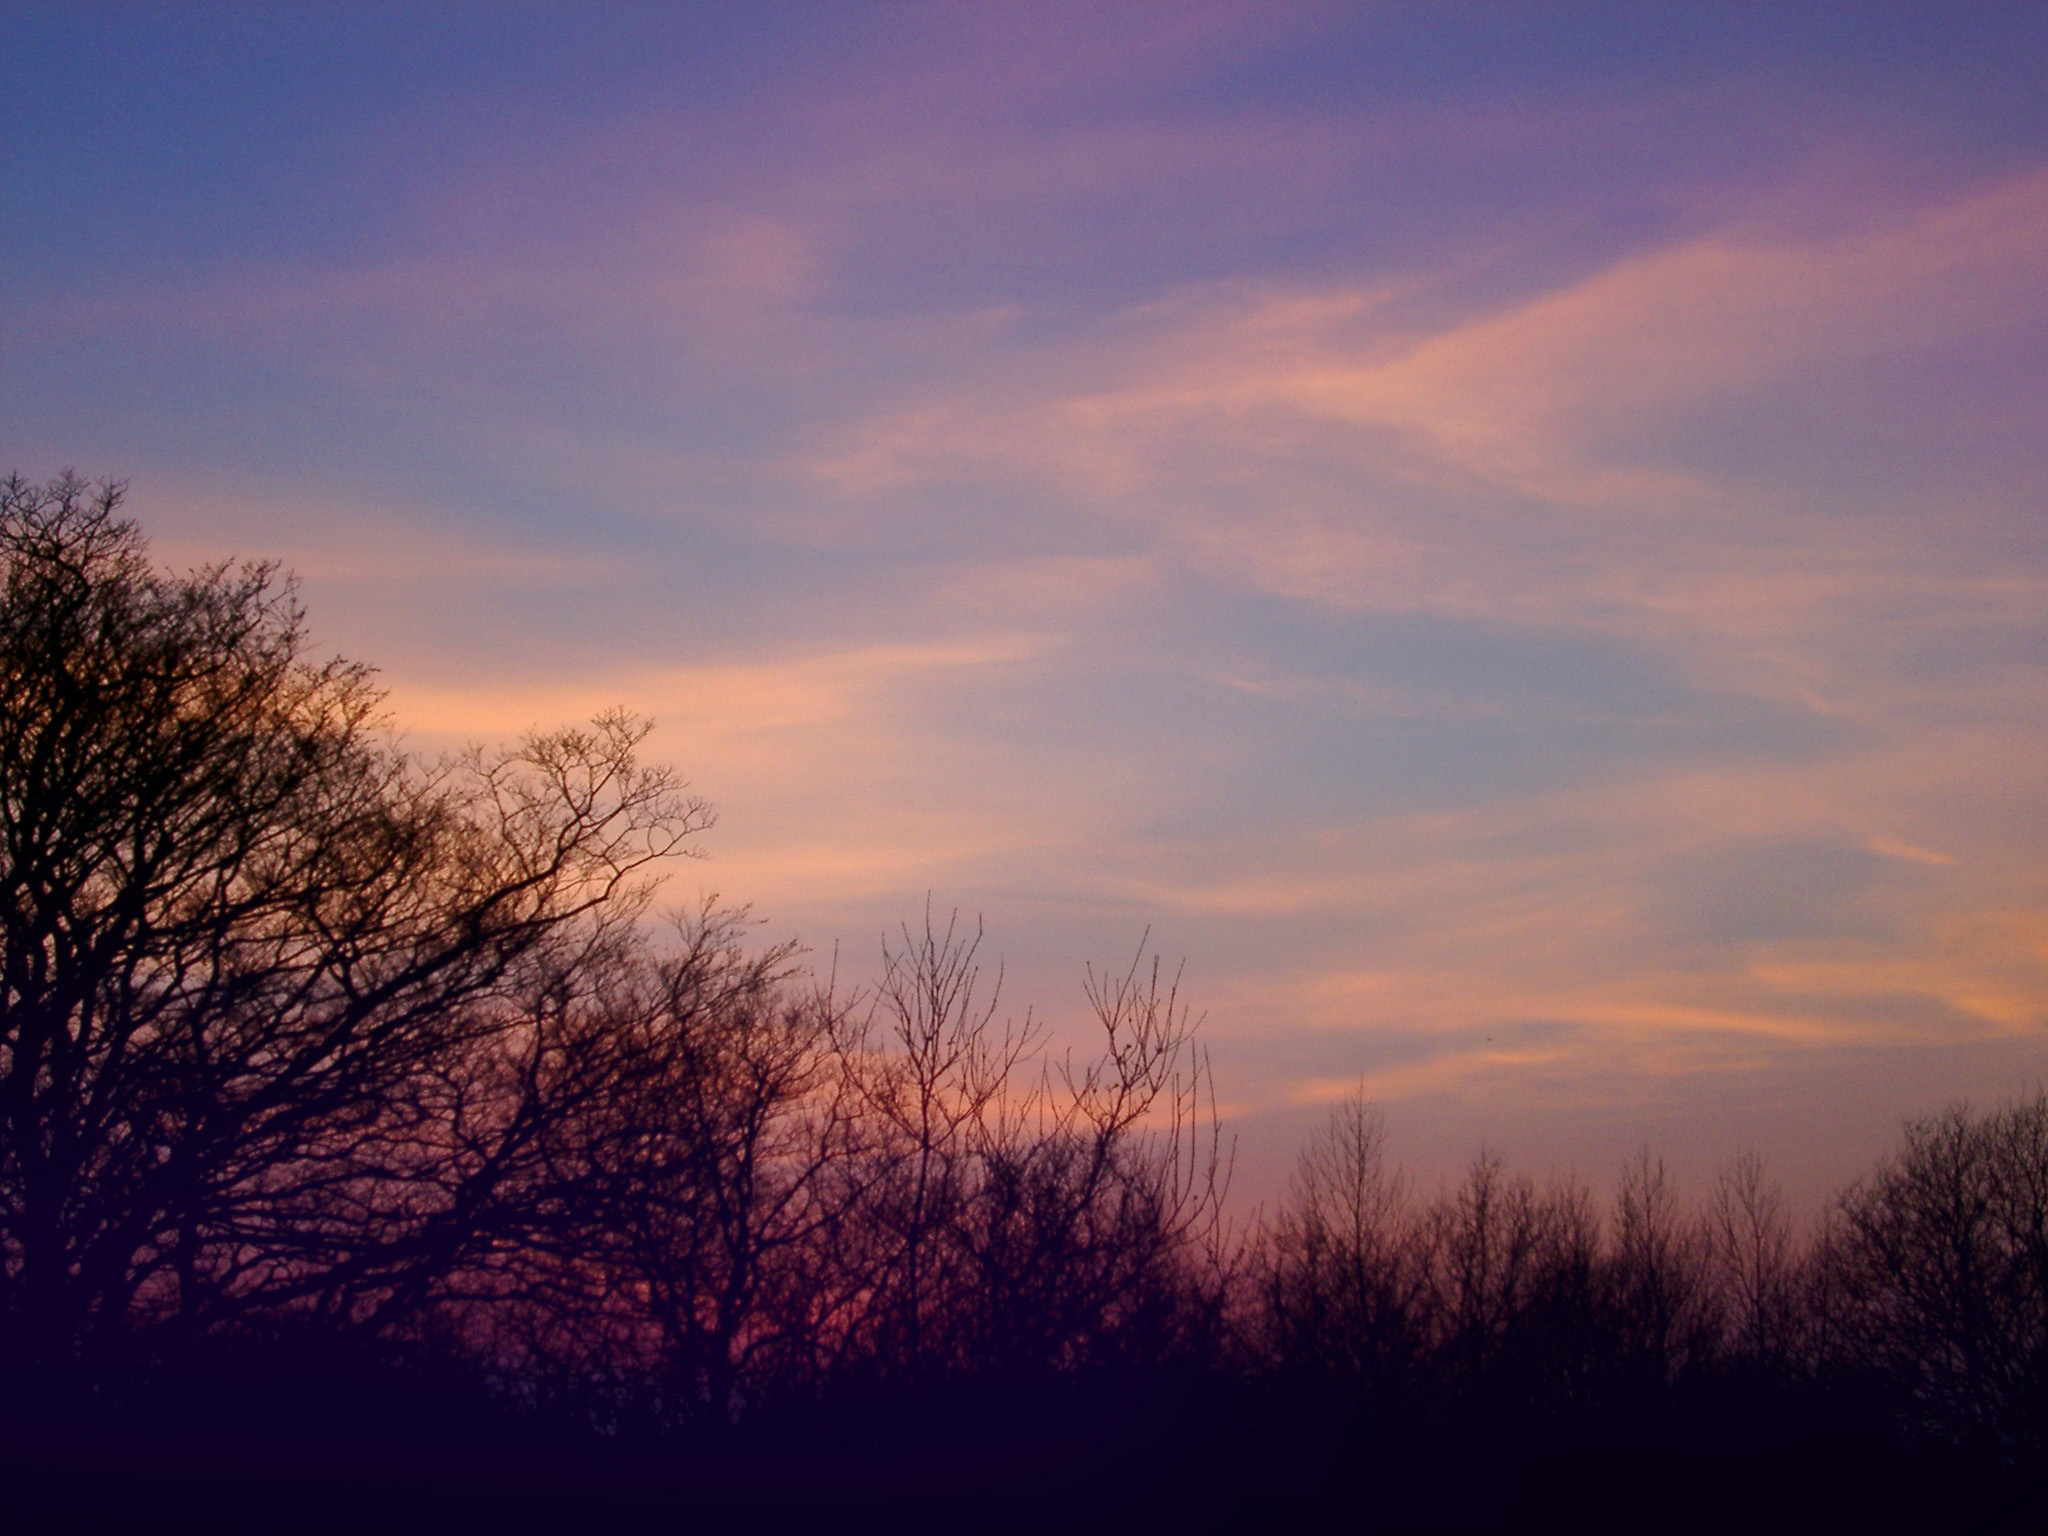 Conceptual Tranquil View of Silhouette Leafless Trees and Sky During Sunset Time.